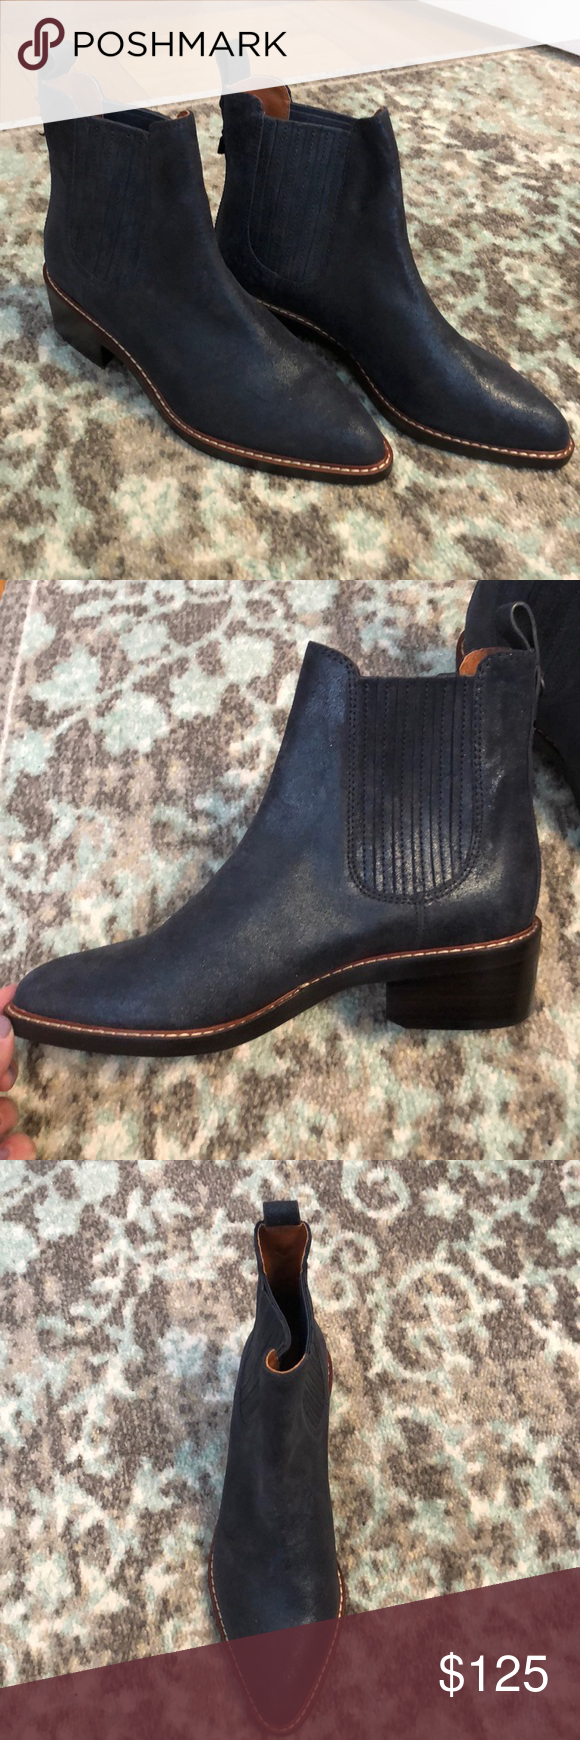 29c9912bd10 ... reduced coach bowery chelsea boot denim coach bowery chelsea boot.  denim. never been worn